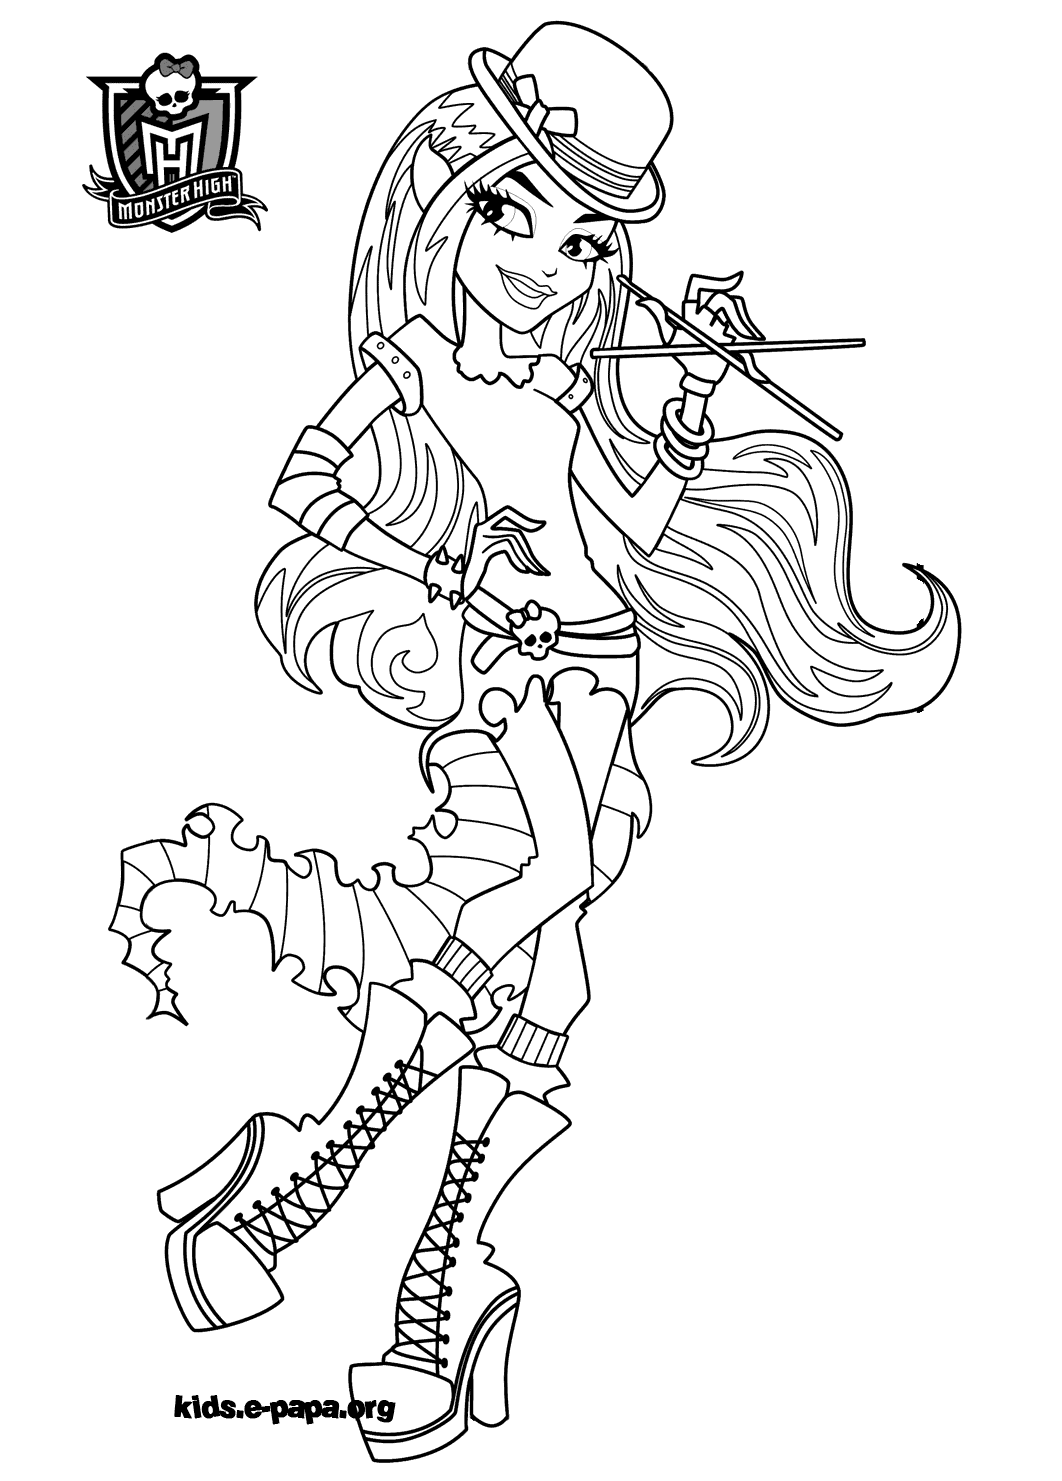 Monster High Coloriage Baby This Printable Colouring Sheet Show A